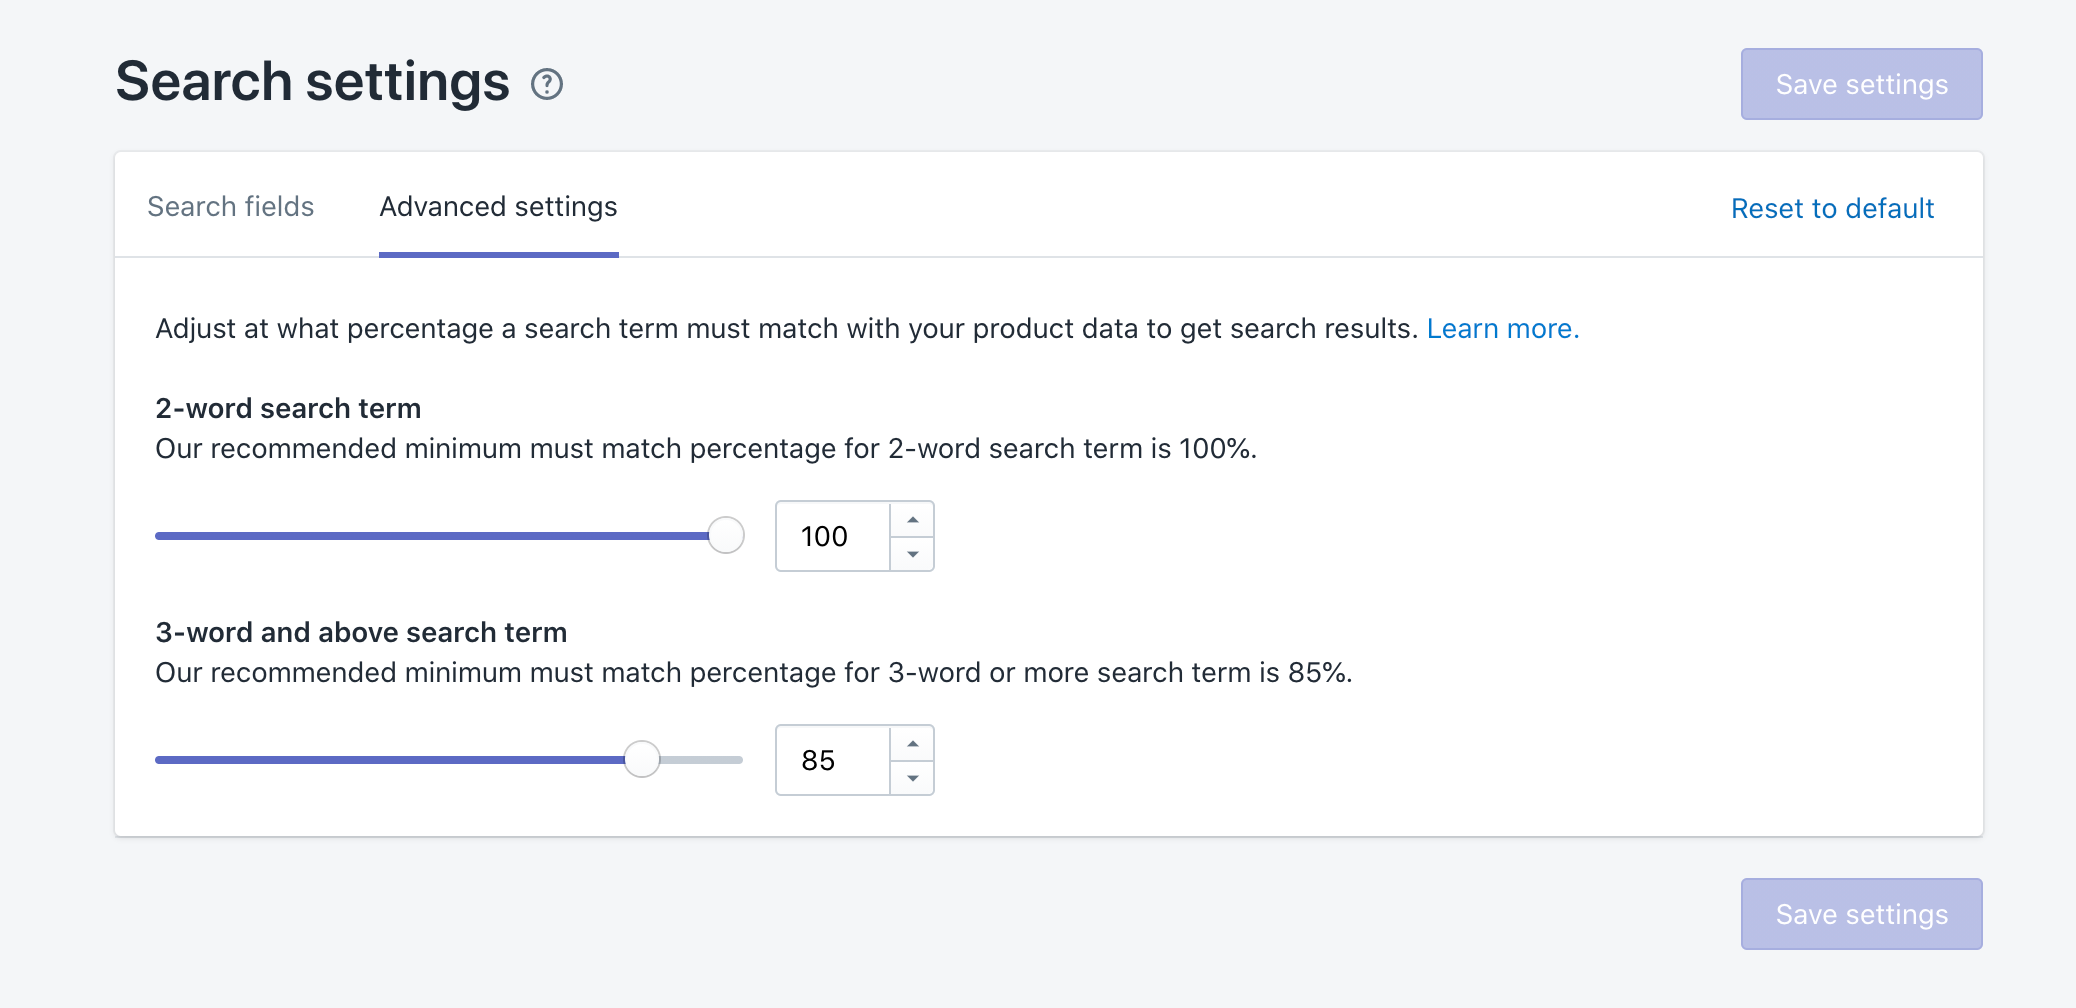 Minimum percentage a search term must match search relevance